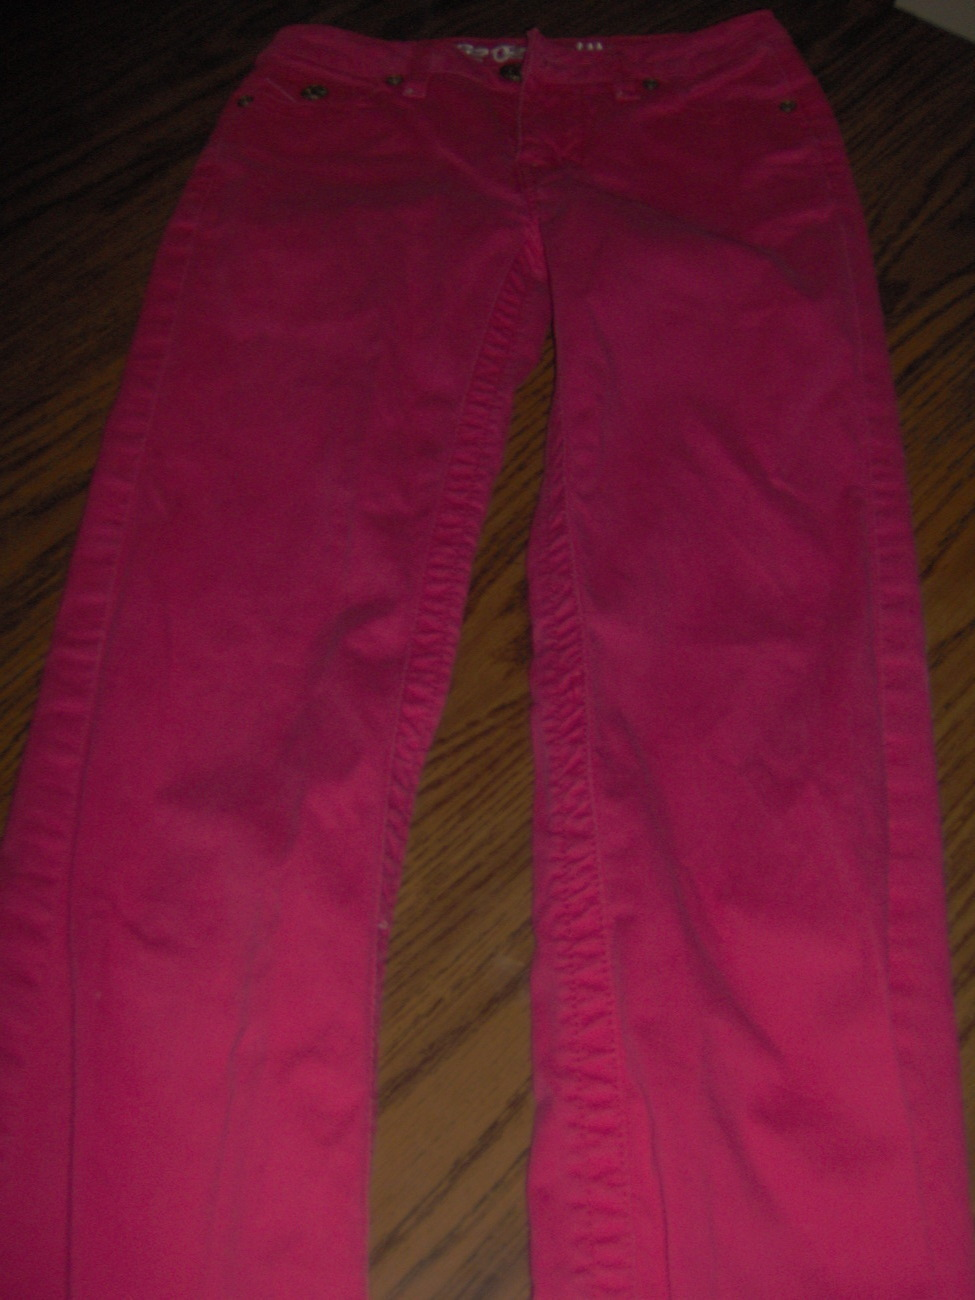 Womens Pepe Pink Jeans Size 1 NWOT